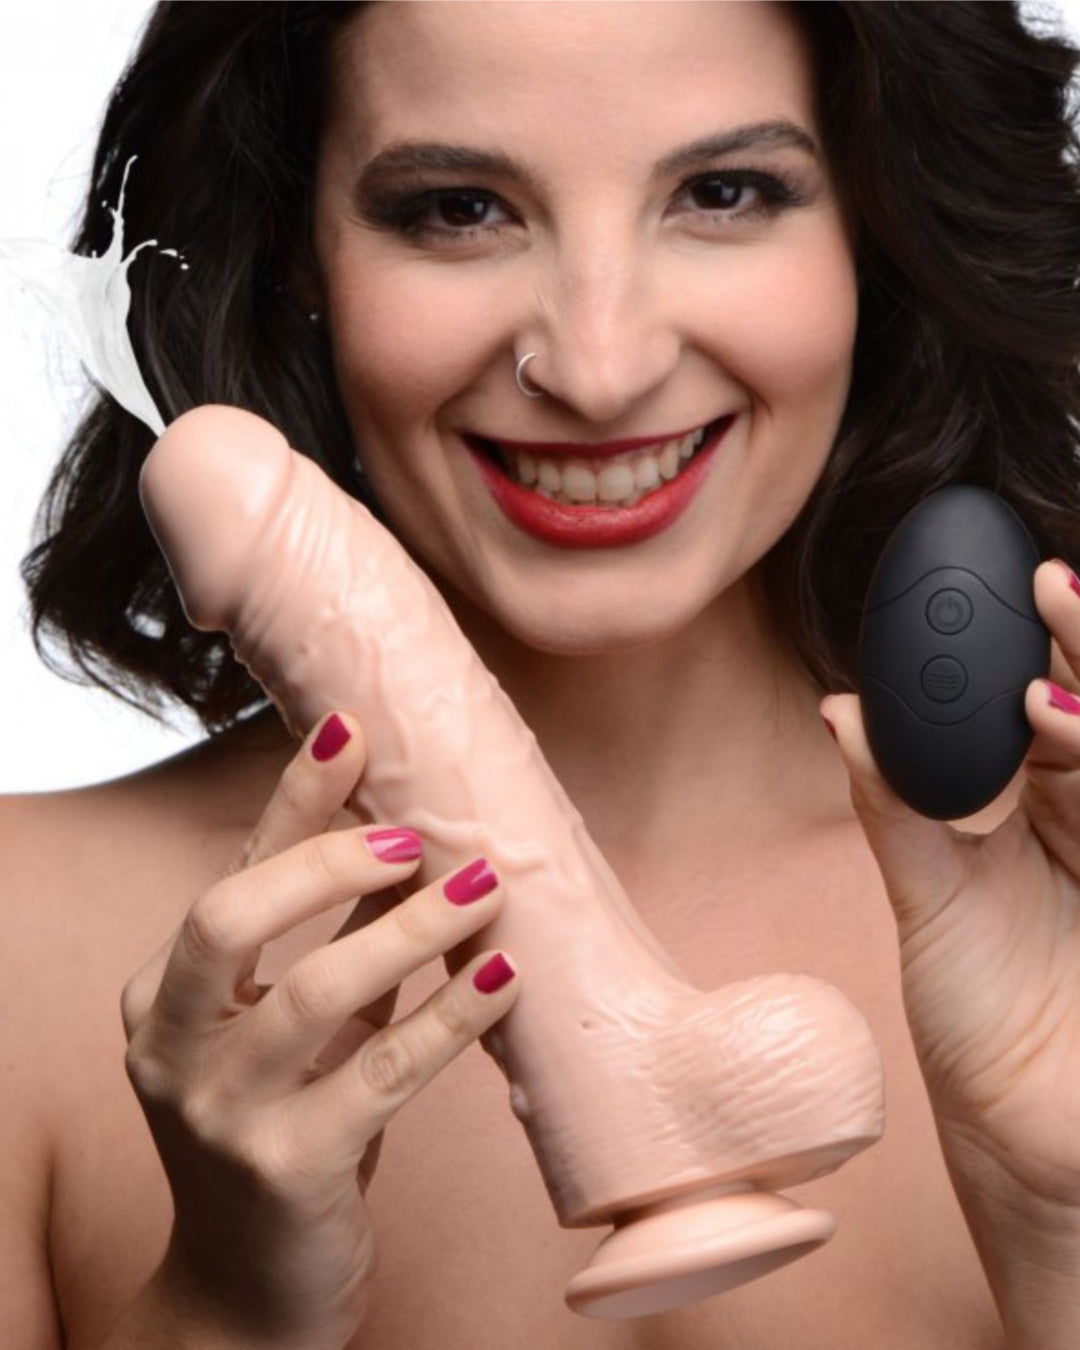 Woman holding the Loadz 7 Inch Vibrating Squirting Dildo with Wireless Remote Control - Vanilla